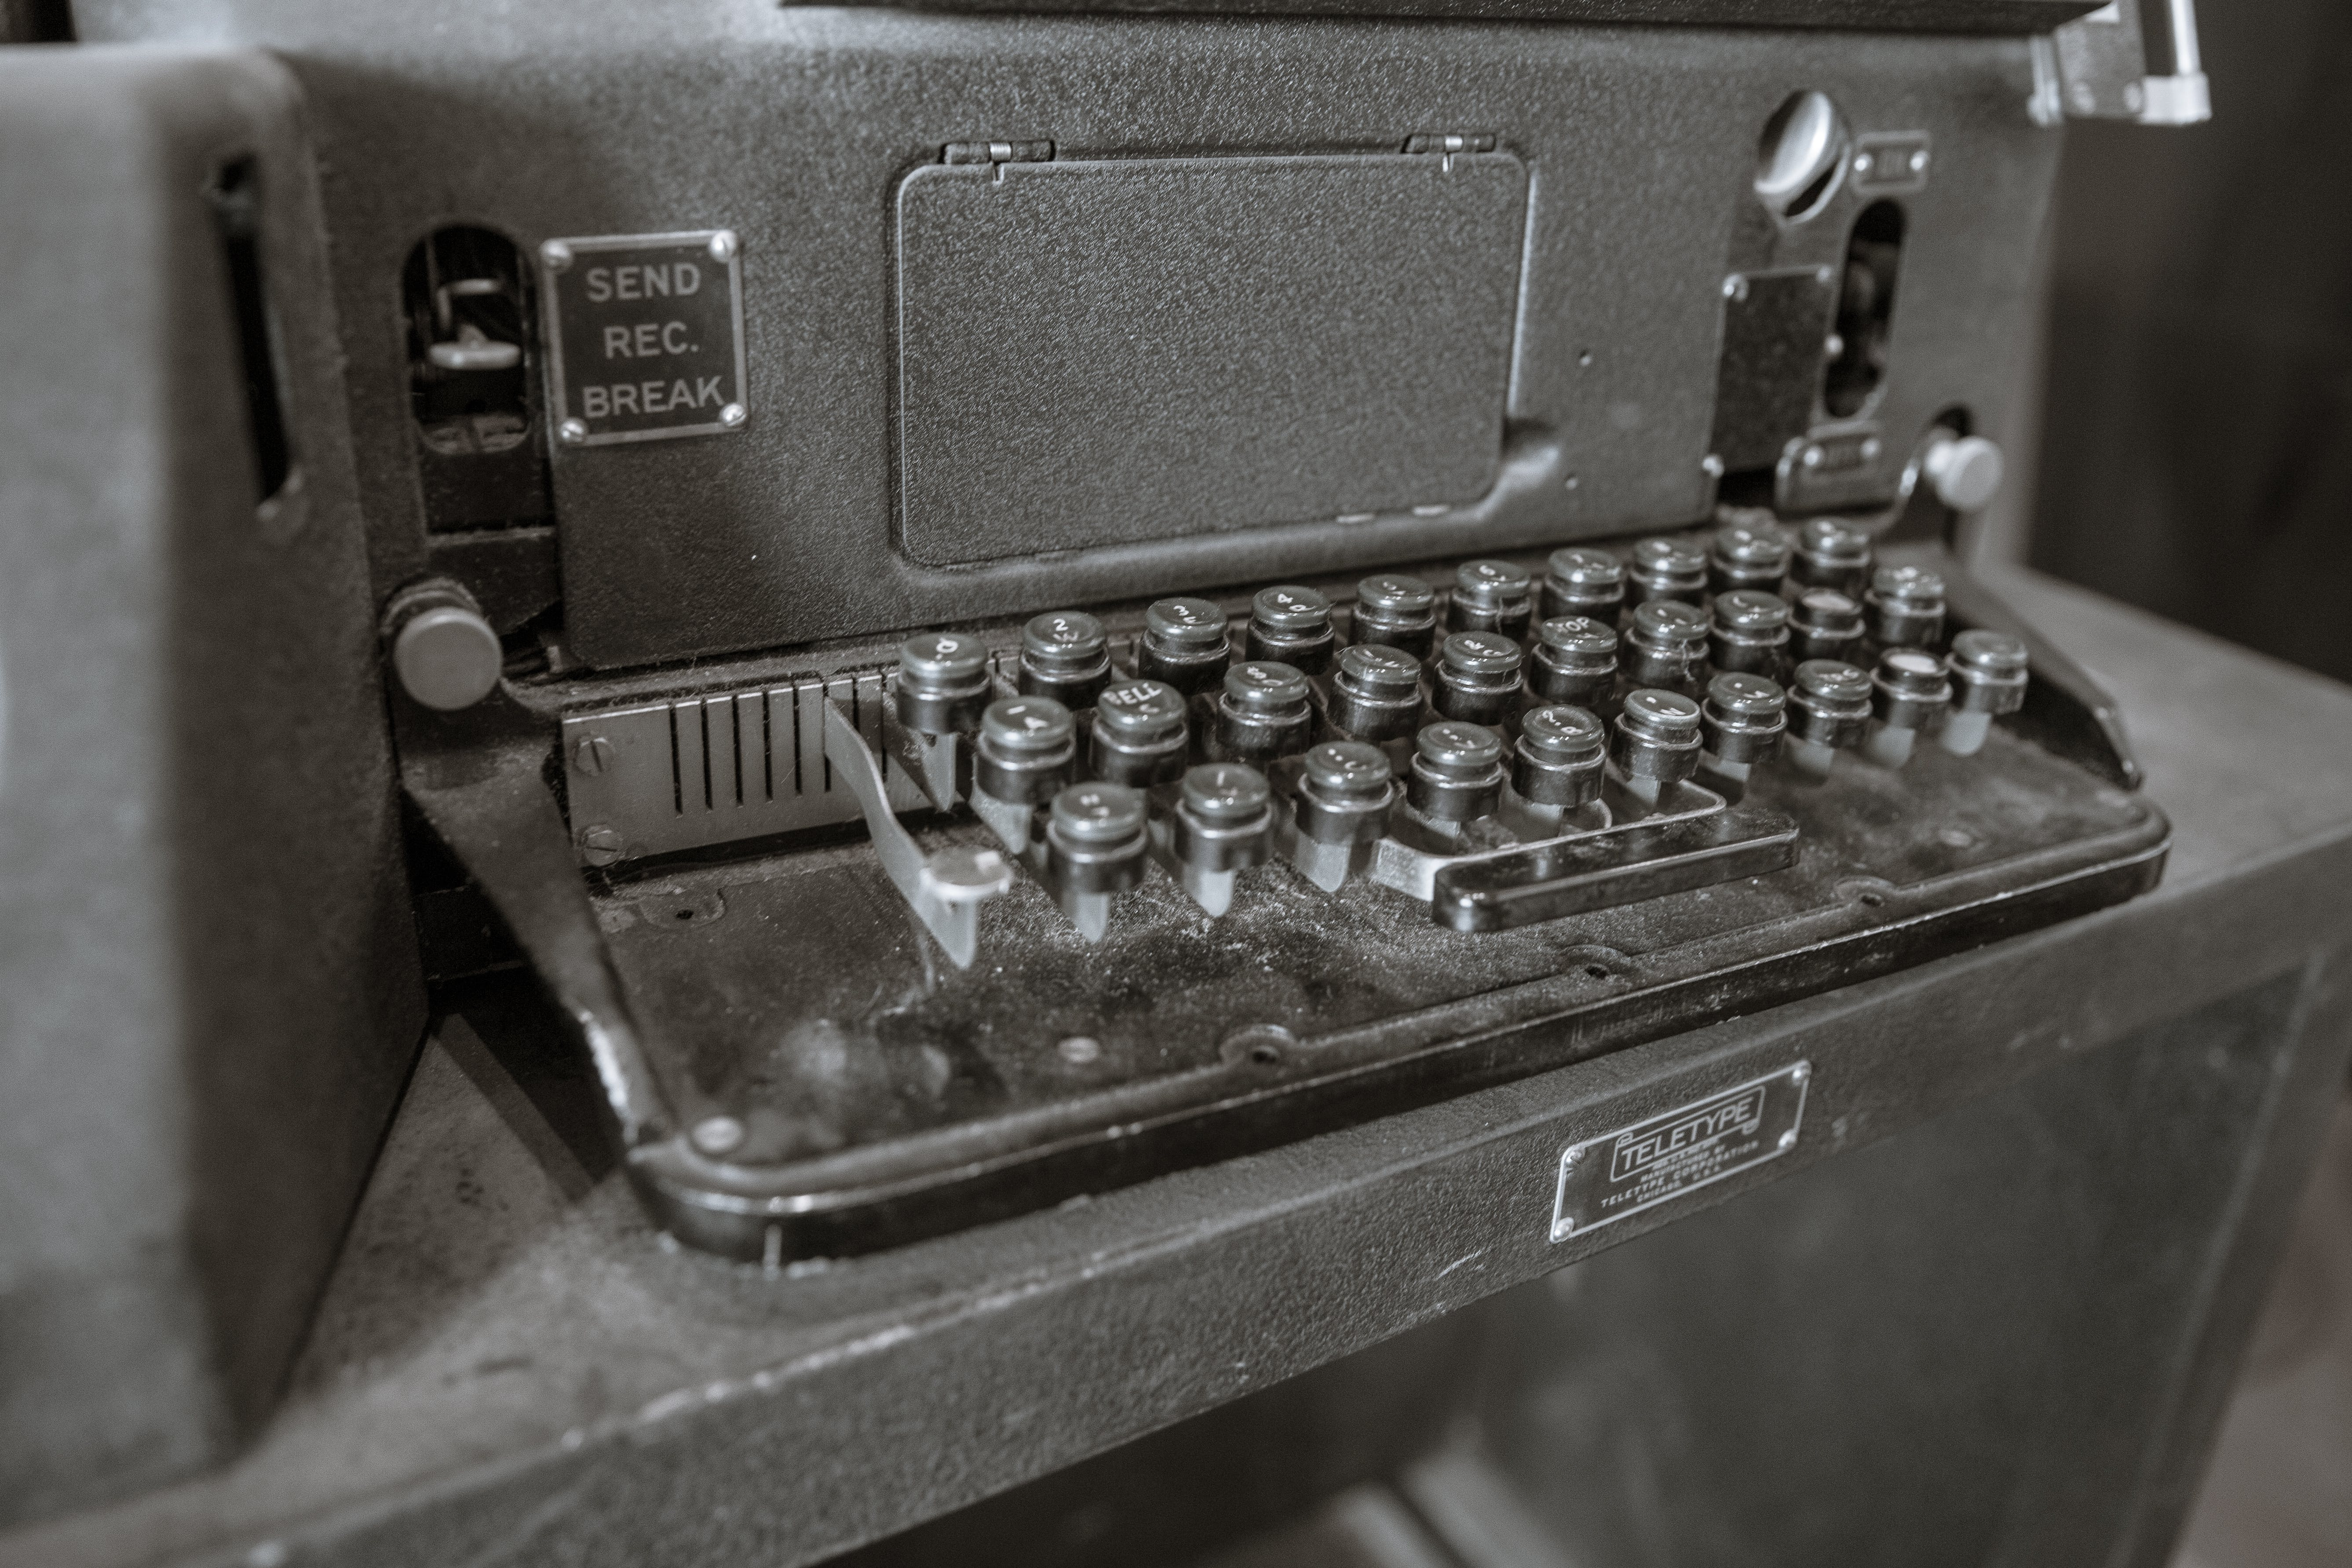 Free stock photo of equipment, tele type, teletype, train